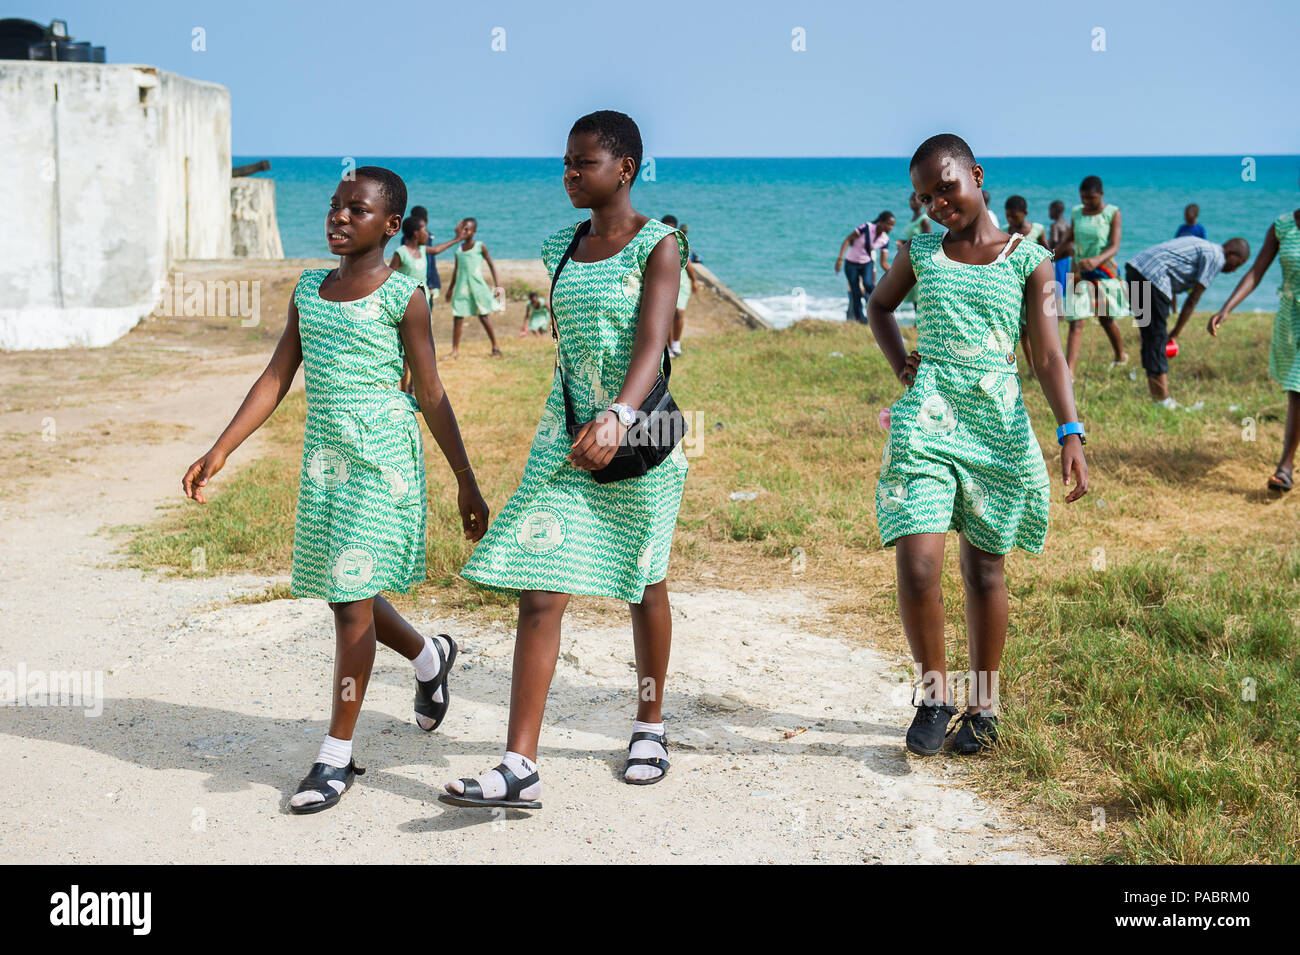 GHANA, ACCRA - MARCH 2, 2012: Students of the Saint Leo International School  came to see the Elmina Castle in Accra, Ghana, on March 2nd, 2012. Child - Stock Image